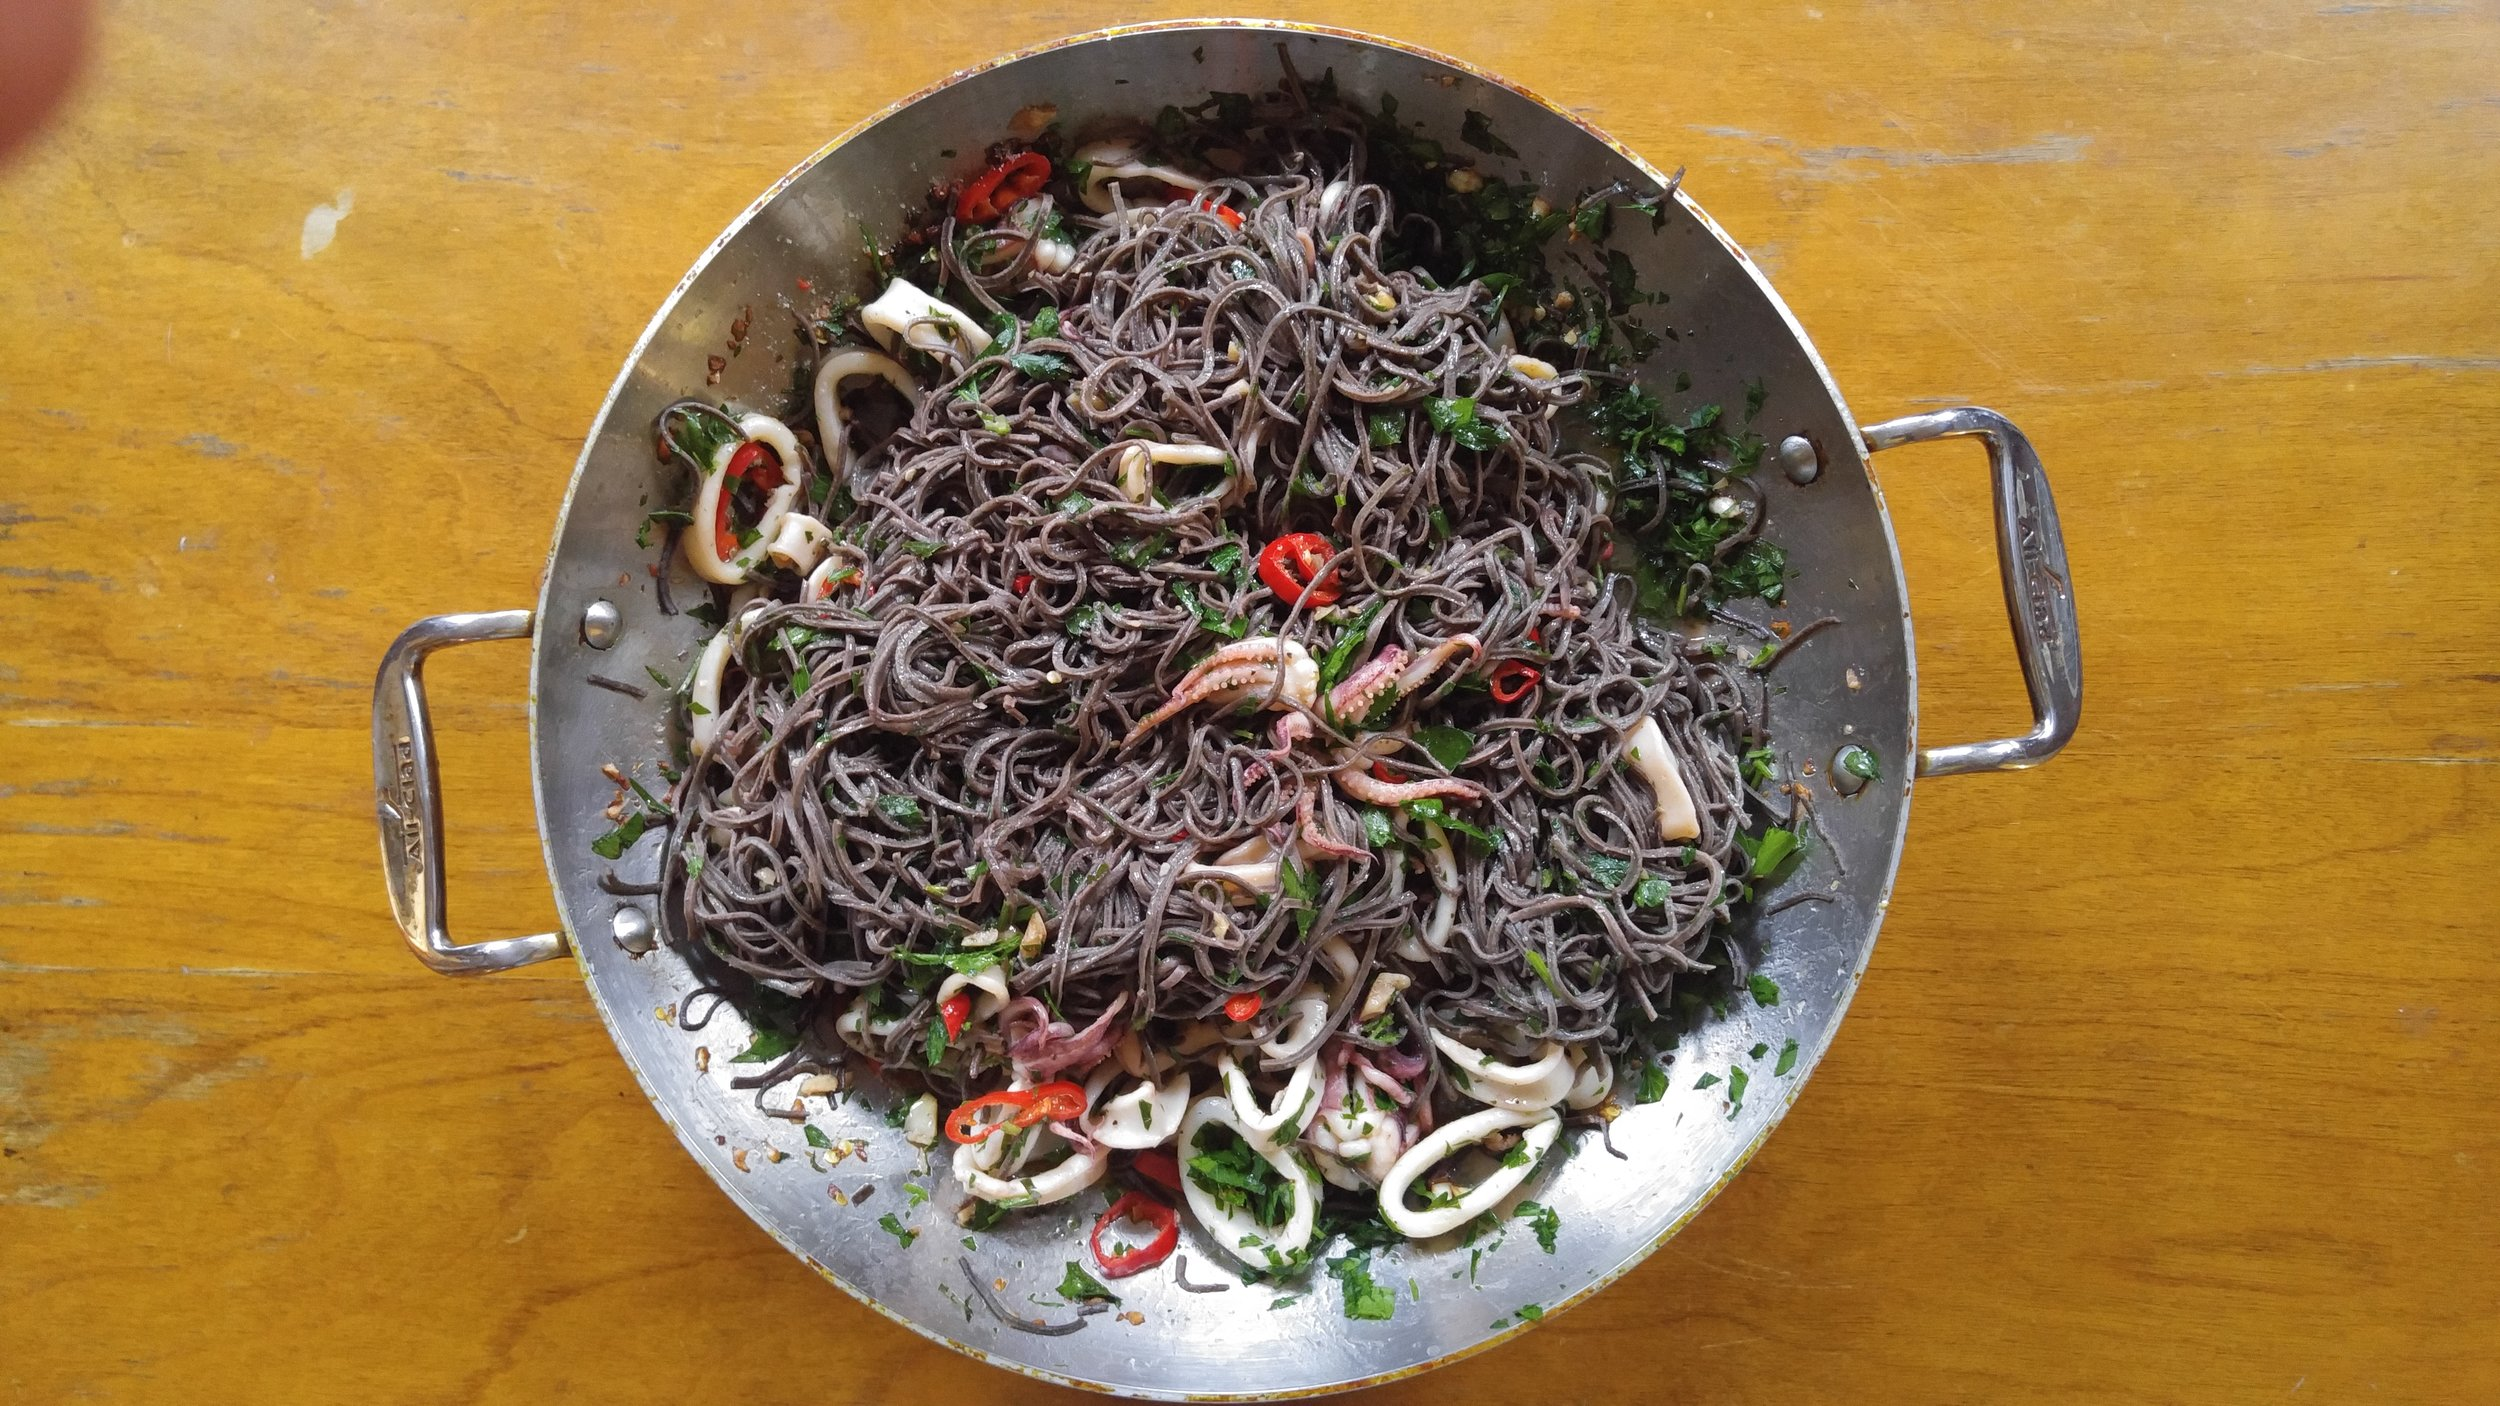 Squid over black bean pasta with jalapenos, parsley and garlic